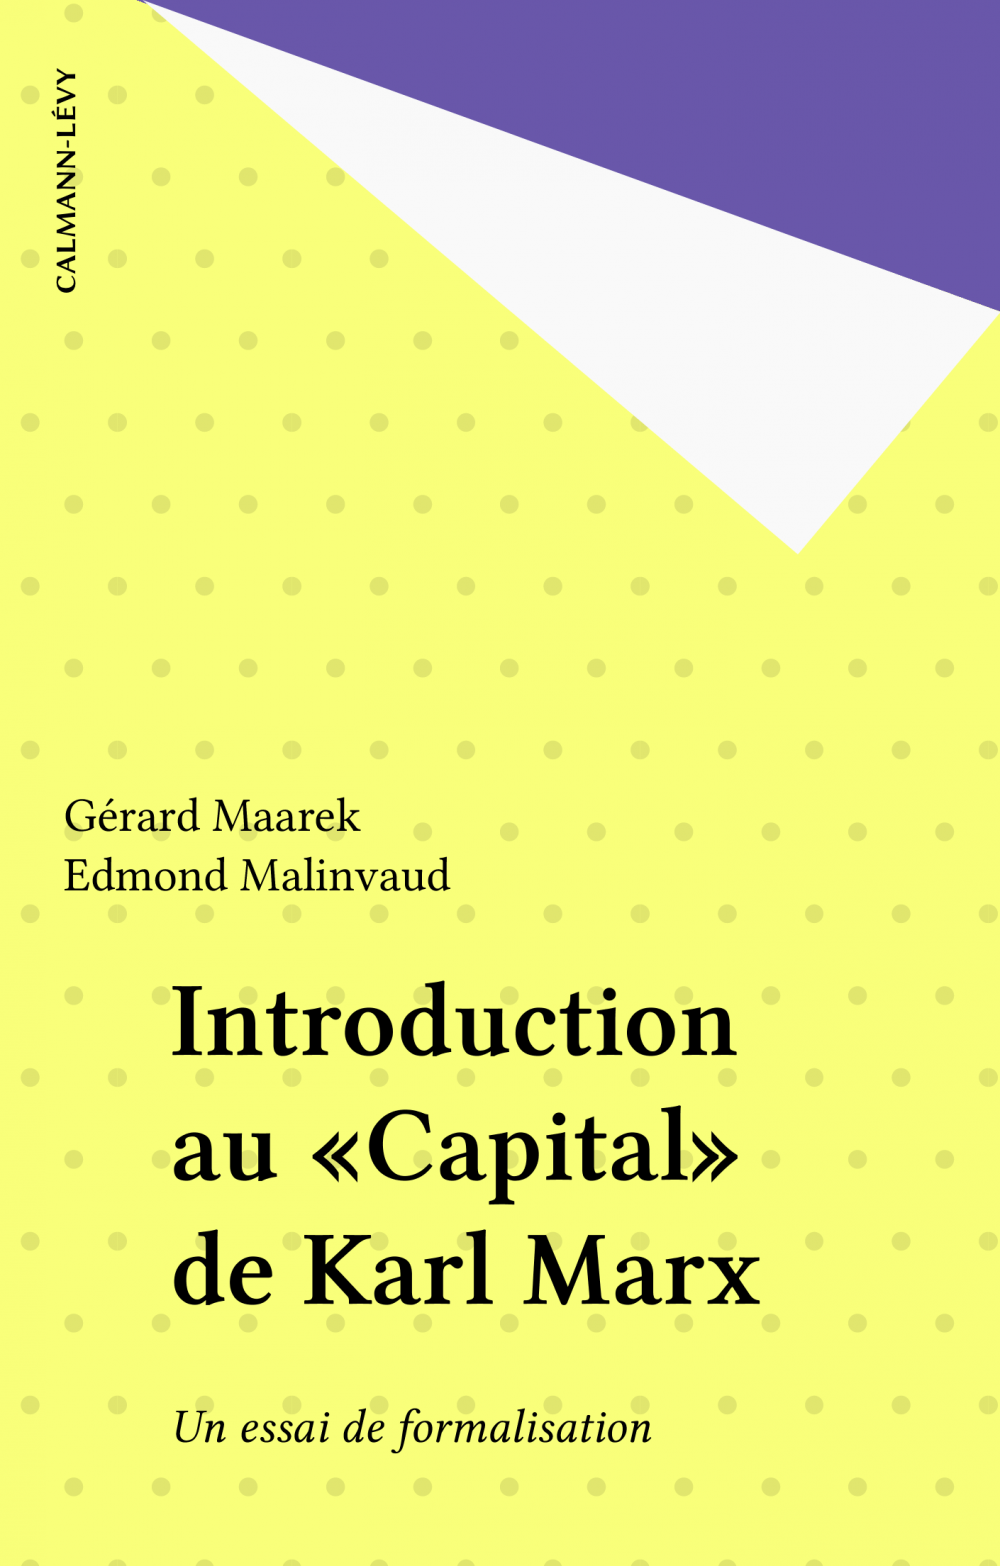 Introduction au «Capital» de Karl Marx